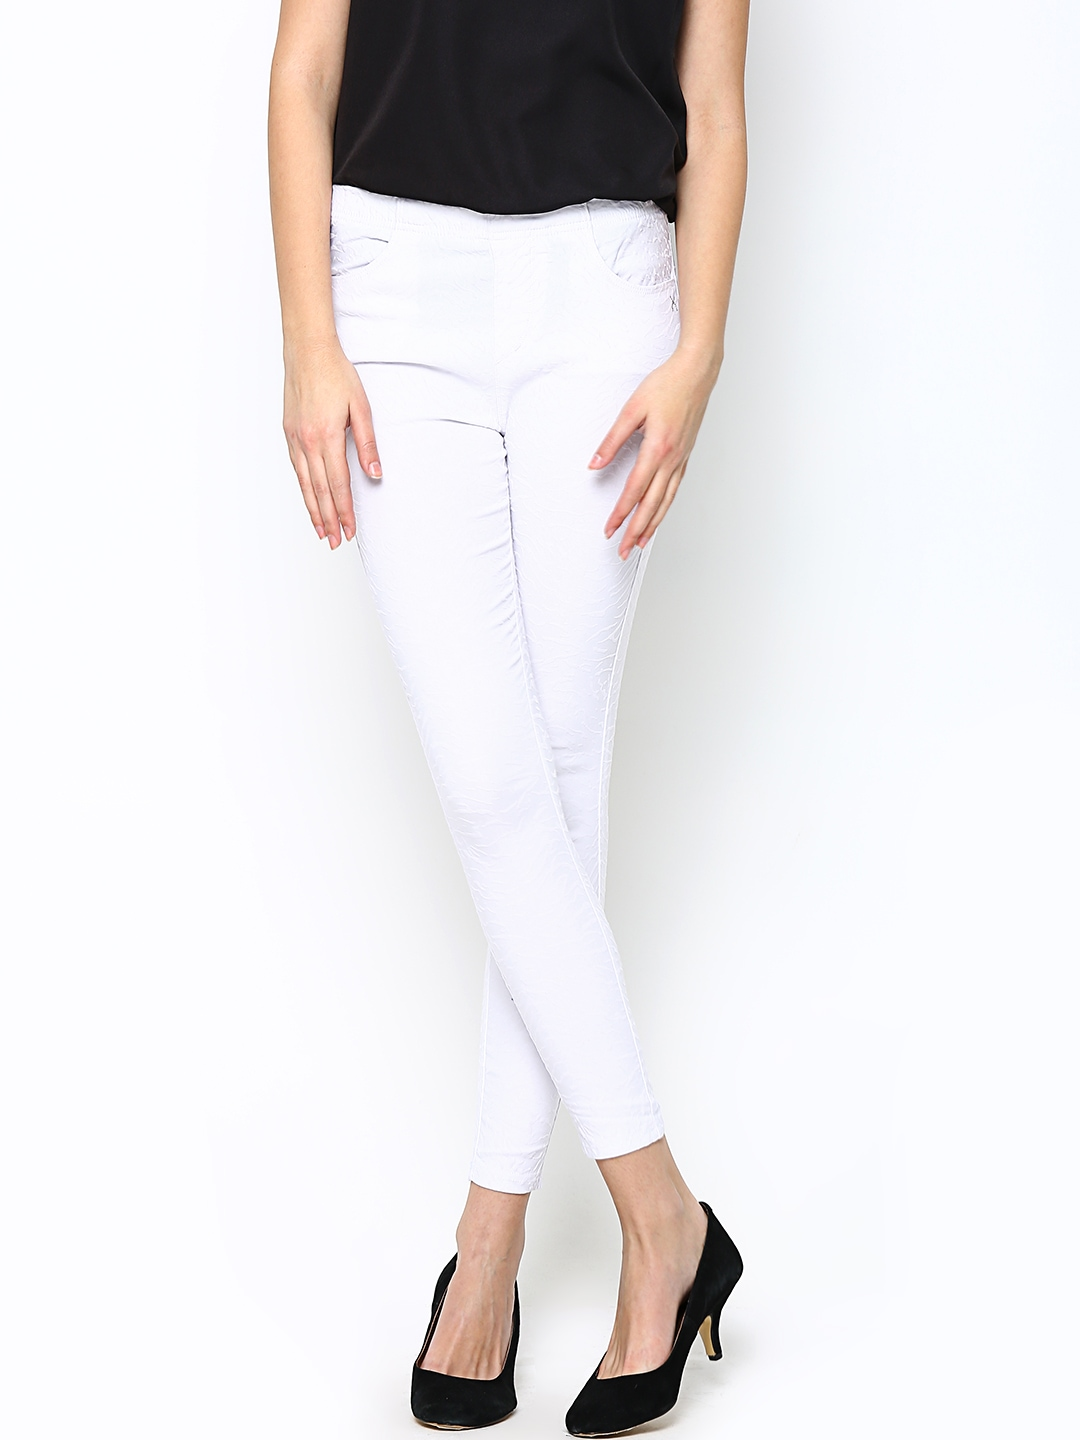 DenimFlex™ off white color jegging. Buy One Get One 50% Off are a fun statement pant perfect for any occasion. Add some bright colors and pair with neutral tops, or rock our jegging jeans that go with any top or shoe style. Related Searches to Women's Jeggings. Women's Jeans, Plus Size Women's Jeans, Plus Size Jeggings.